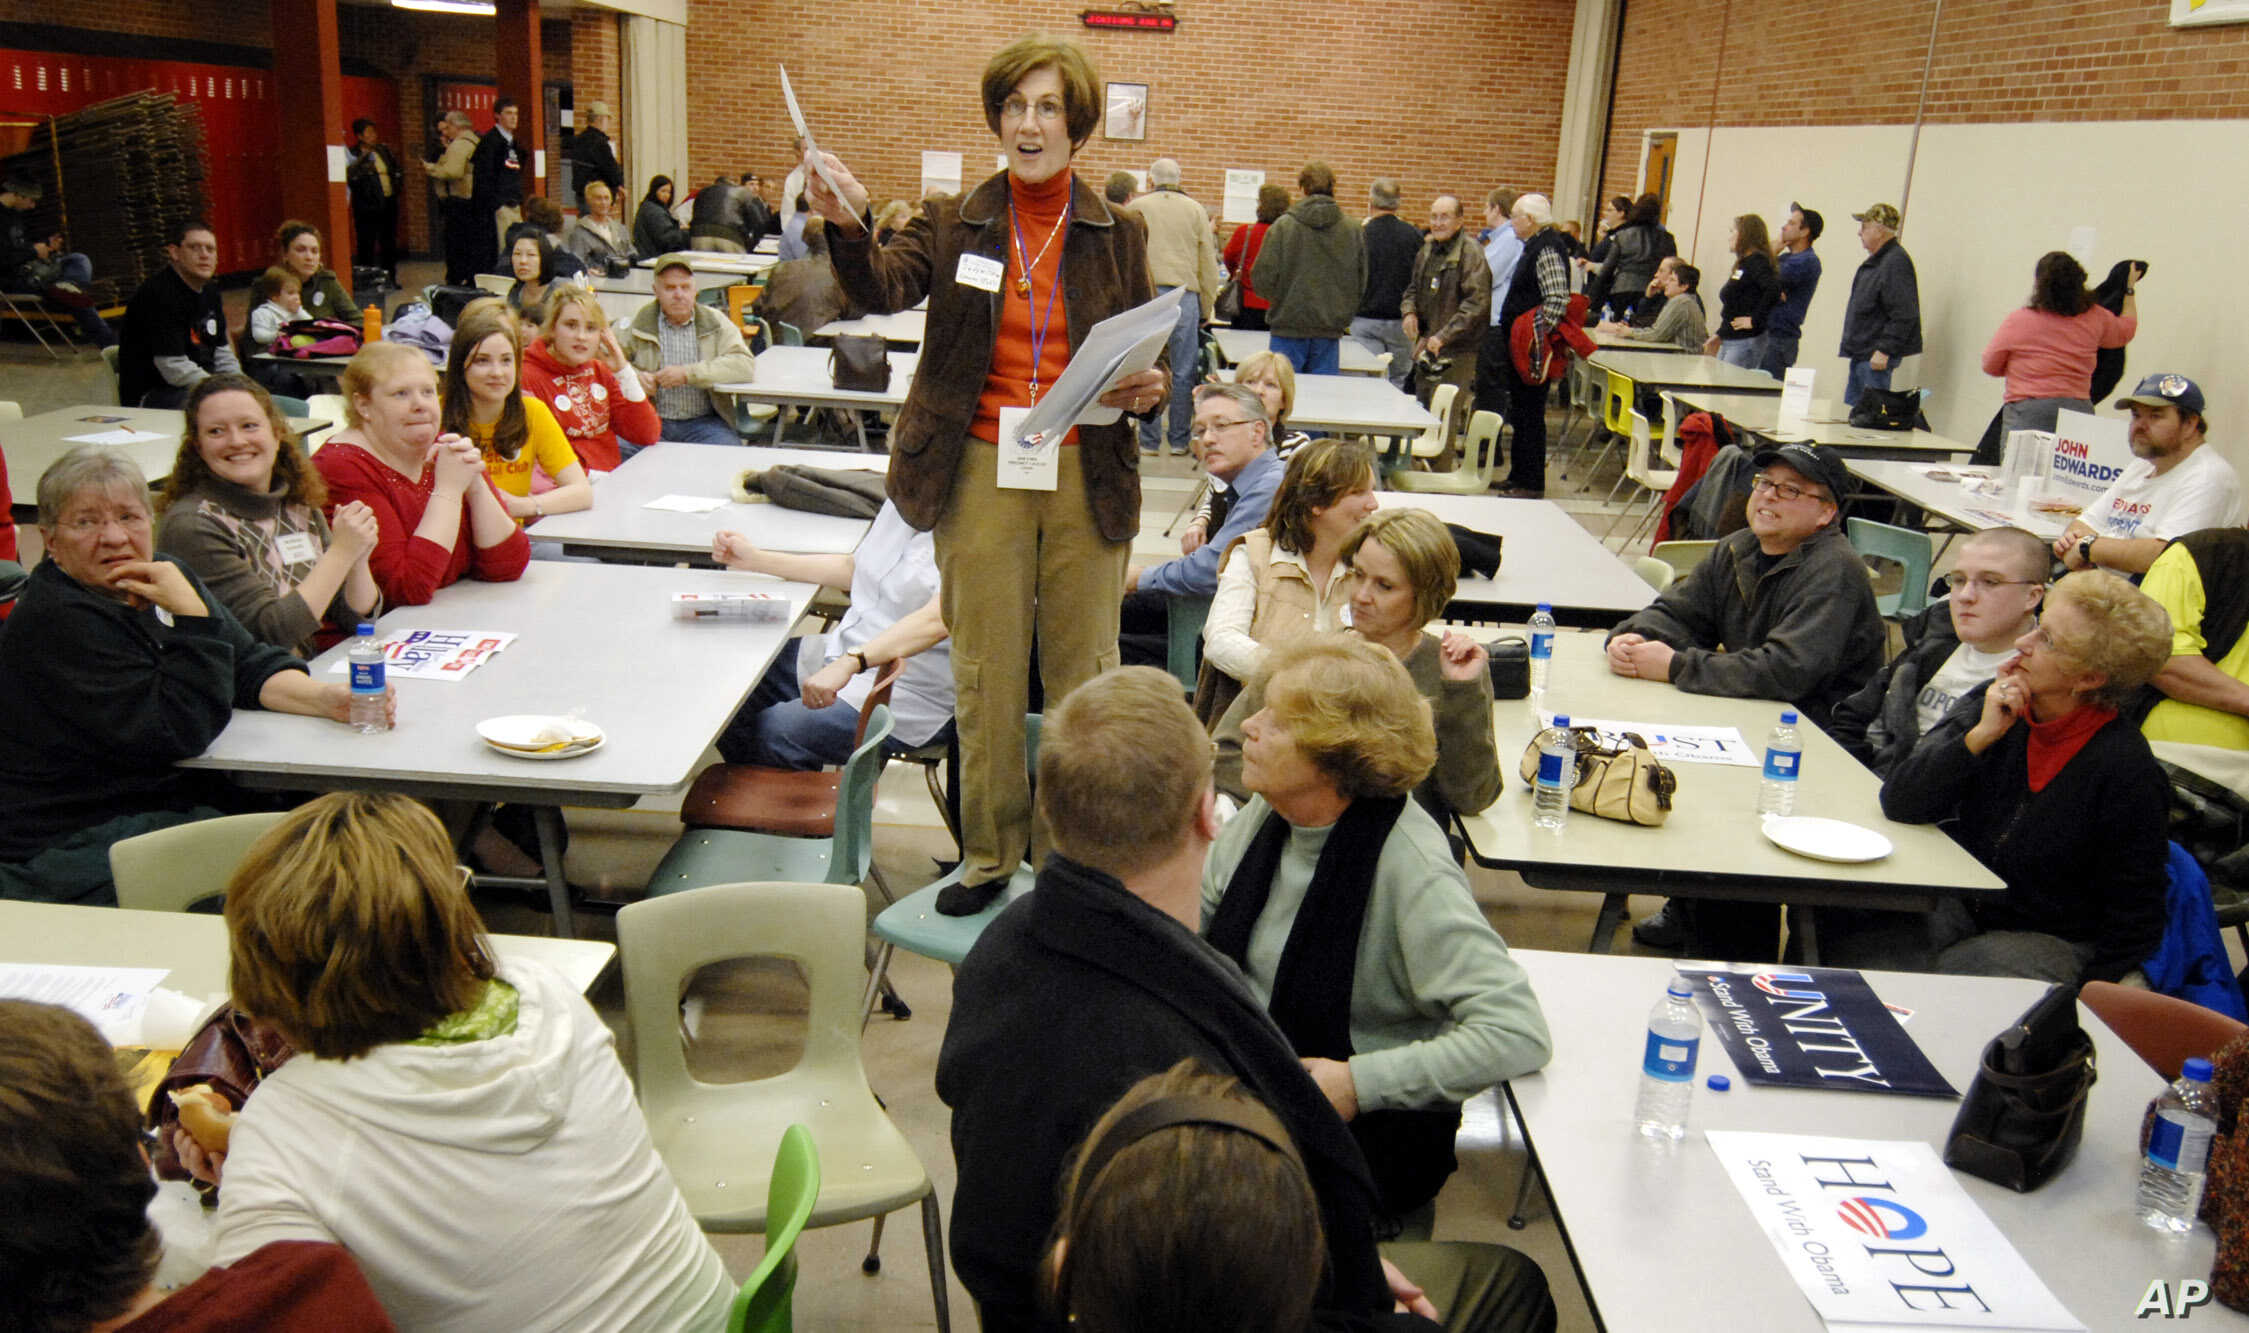 FILE - Precinct Chairwoman Judy Wittkop explains the rules during a caucus in Le Mars, Iowa, Jan. 3, 2008.